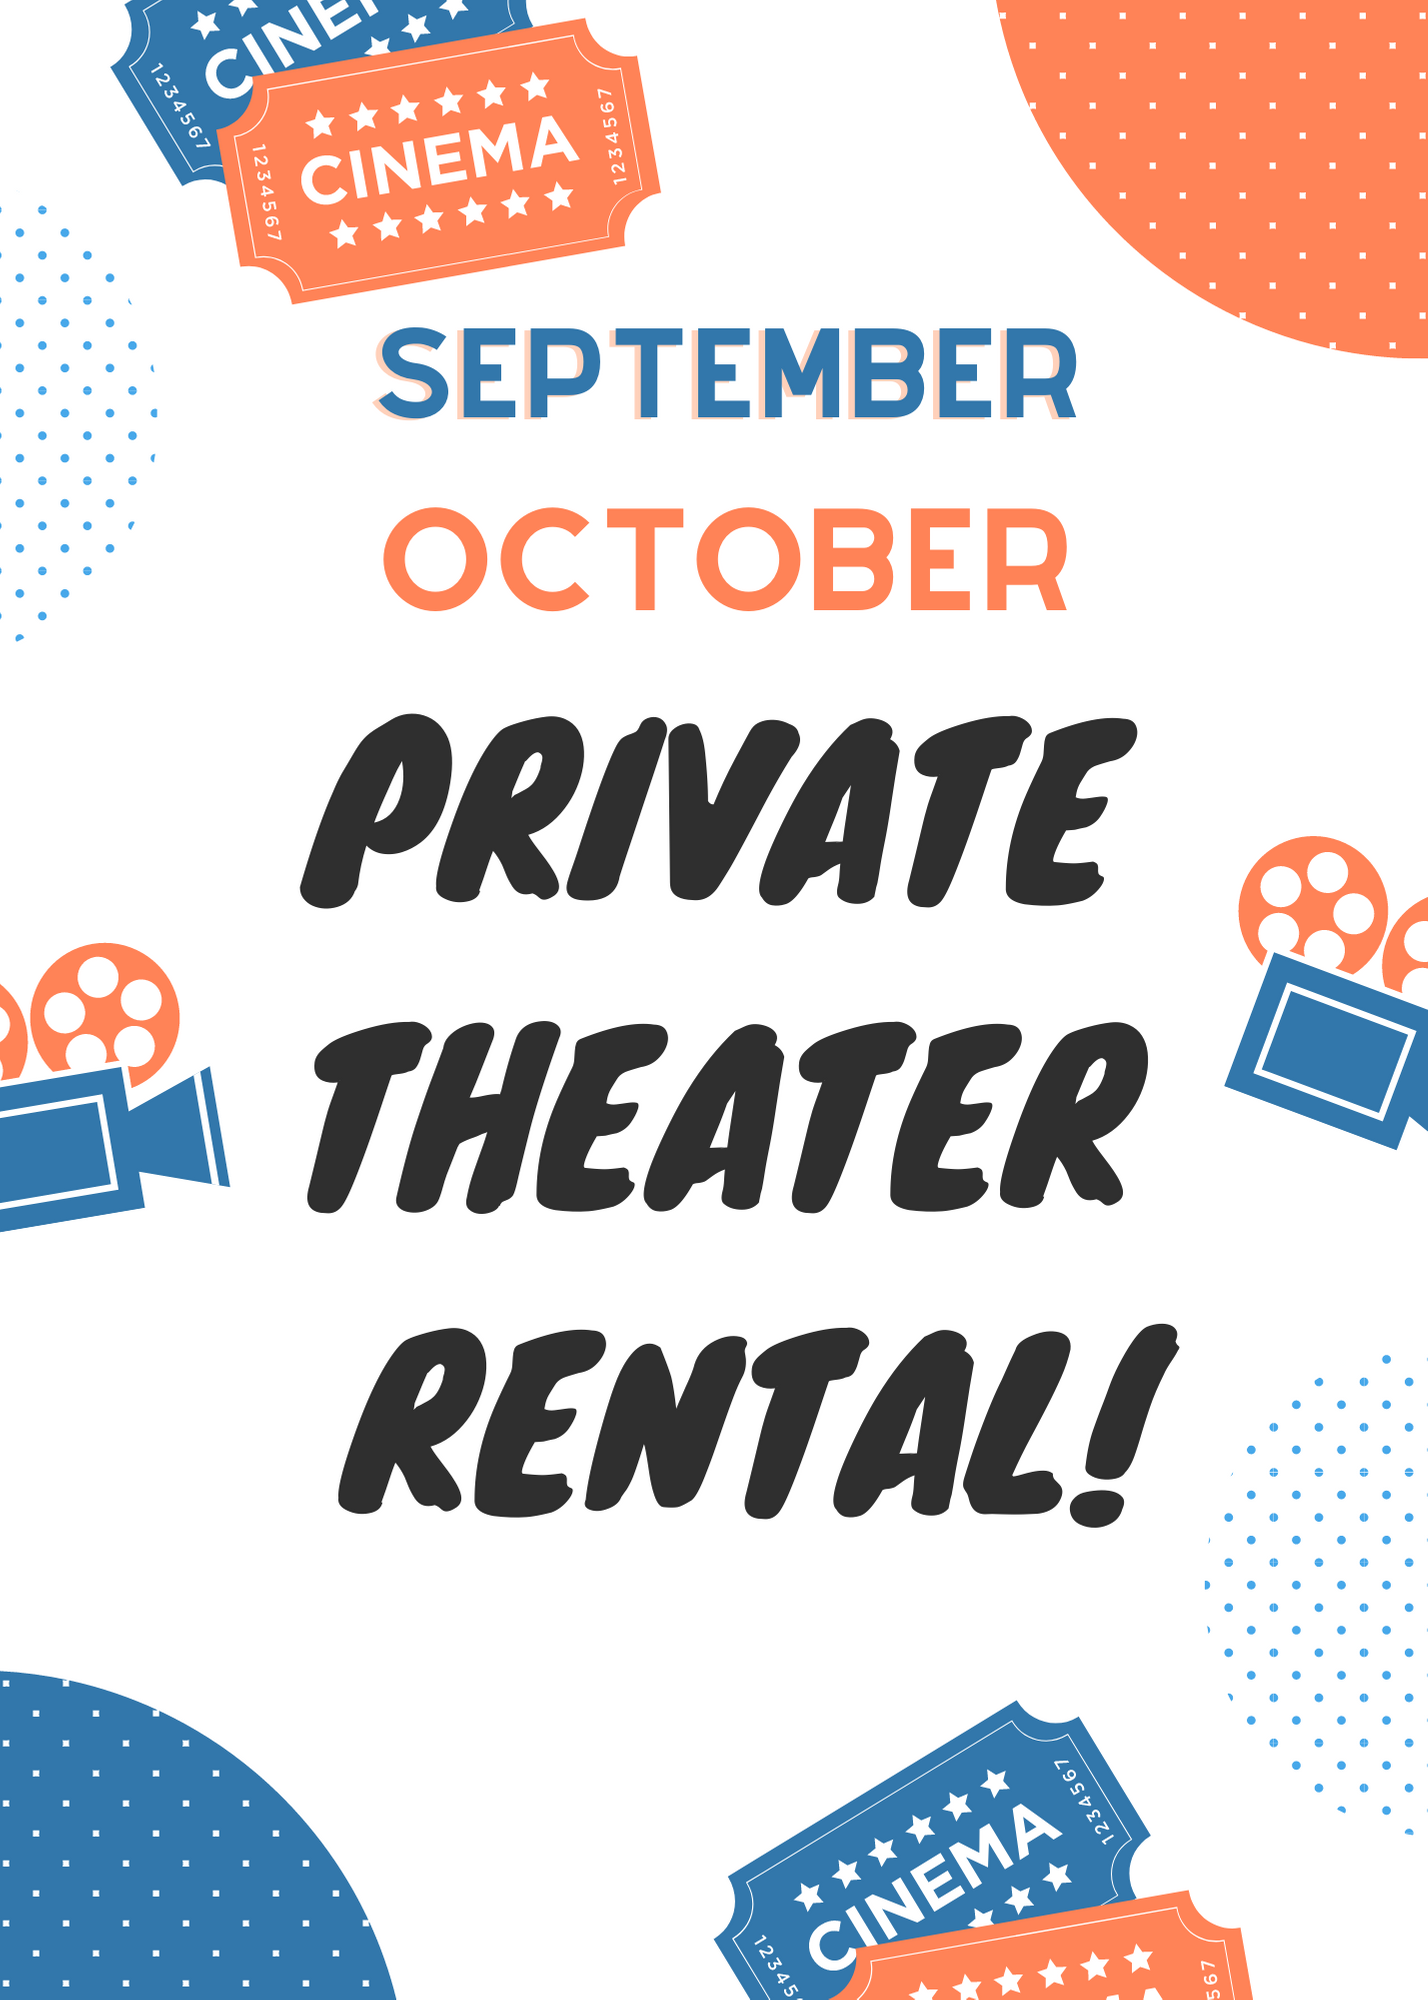 Poster for September/October Private Theater Rental